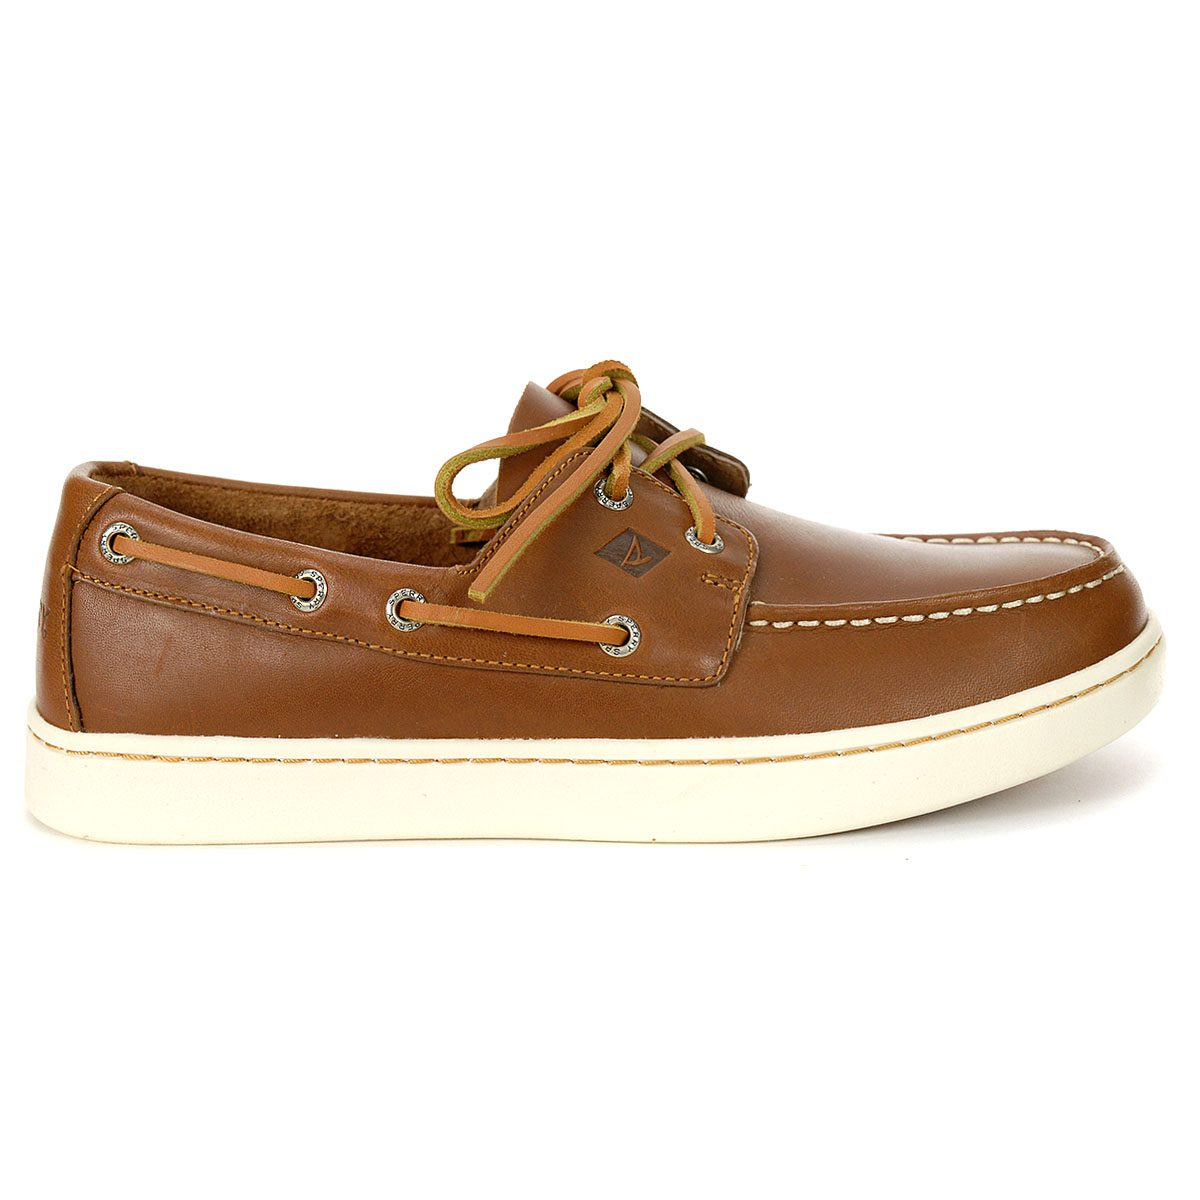 Sperry Top-Sider Men's Sperry Cup Tan